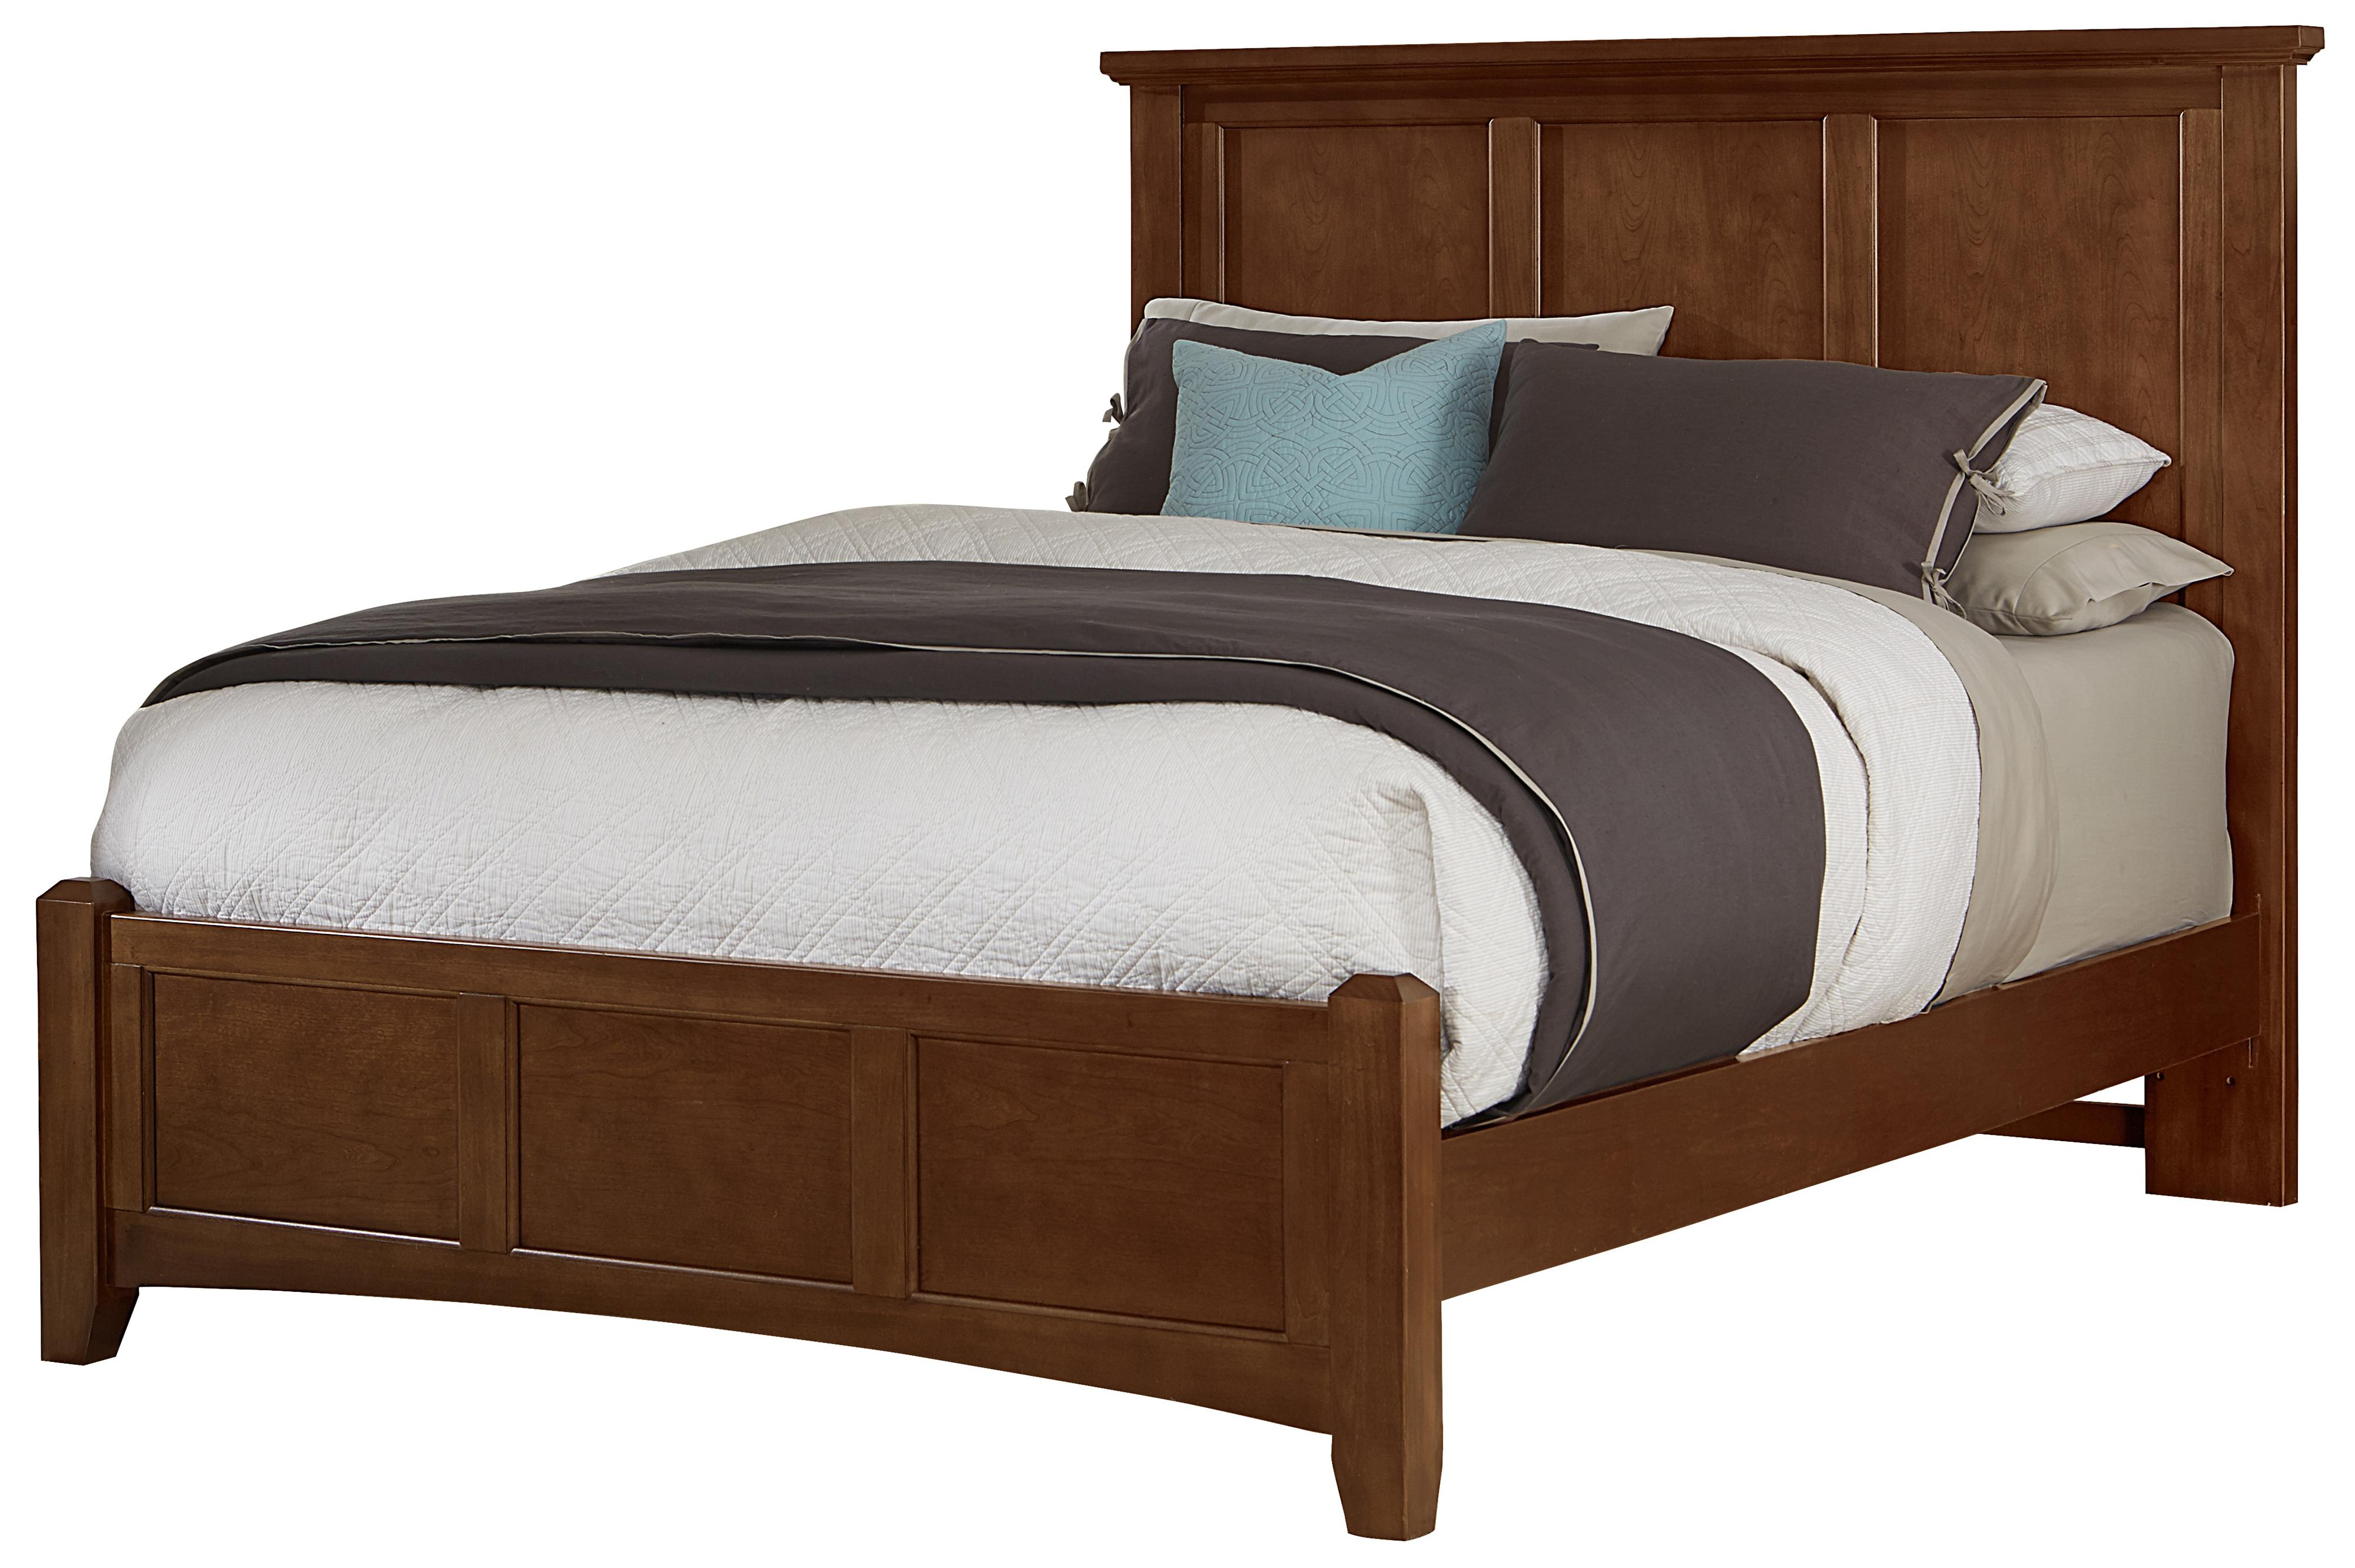 Vaughan Bassett Bonanza Full Mansion Bed - Item Number: BB28-552+255+911